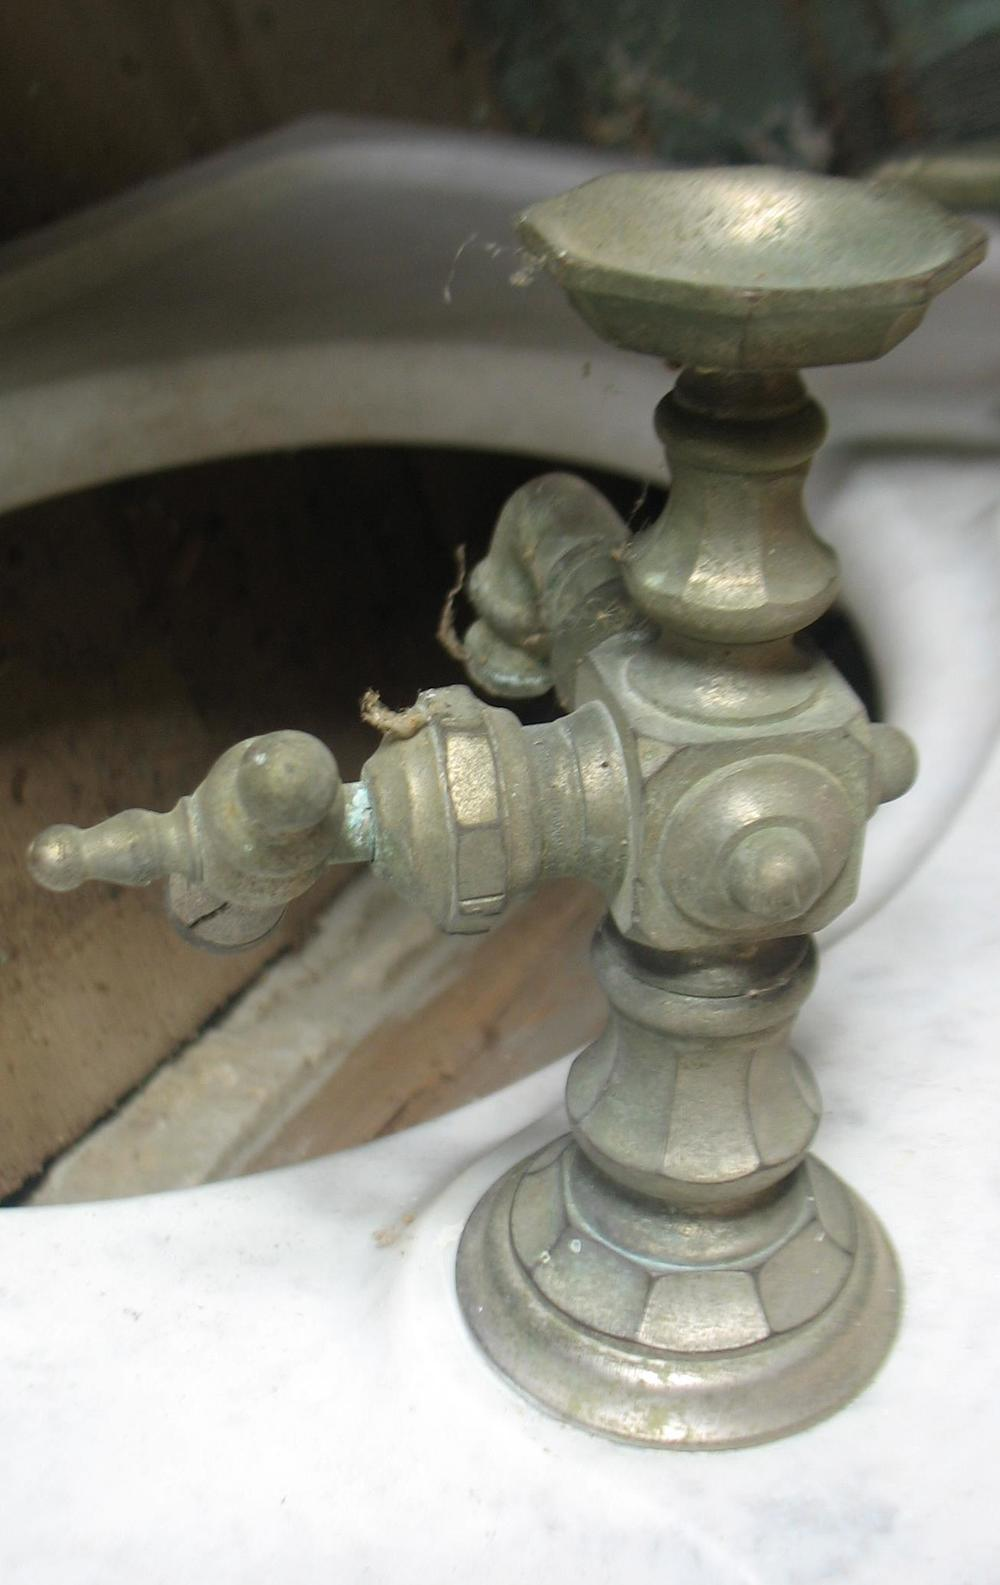 This shows detail of the original nickel hardware  very unusual and unique. Bathroom Pieces   Sycamore HomeStead